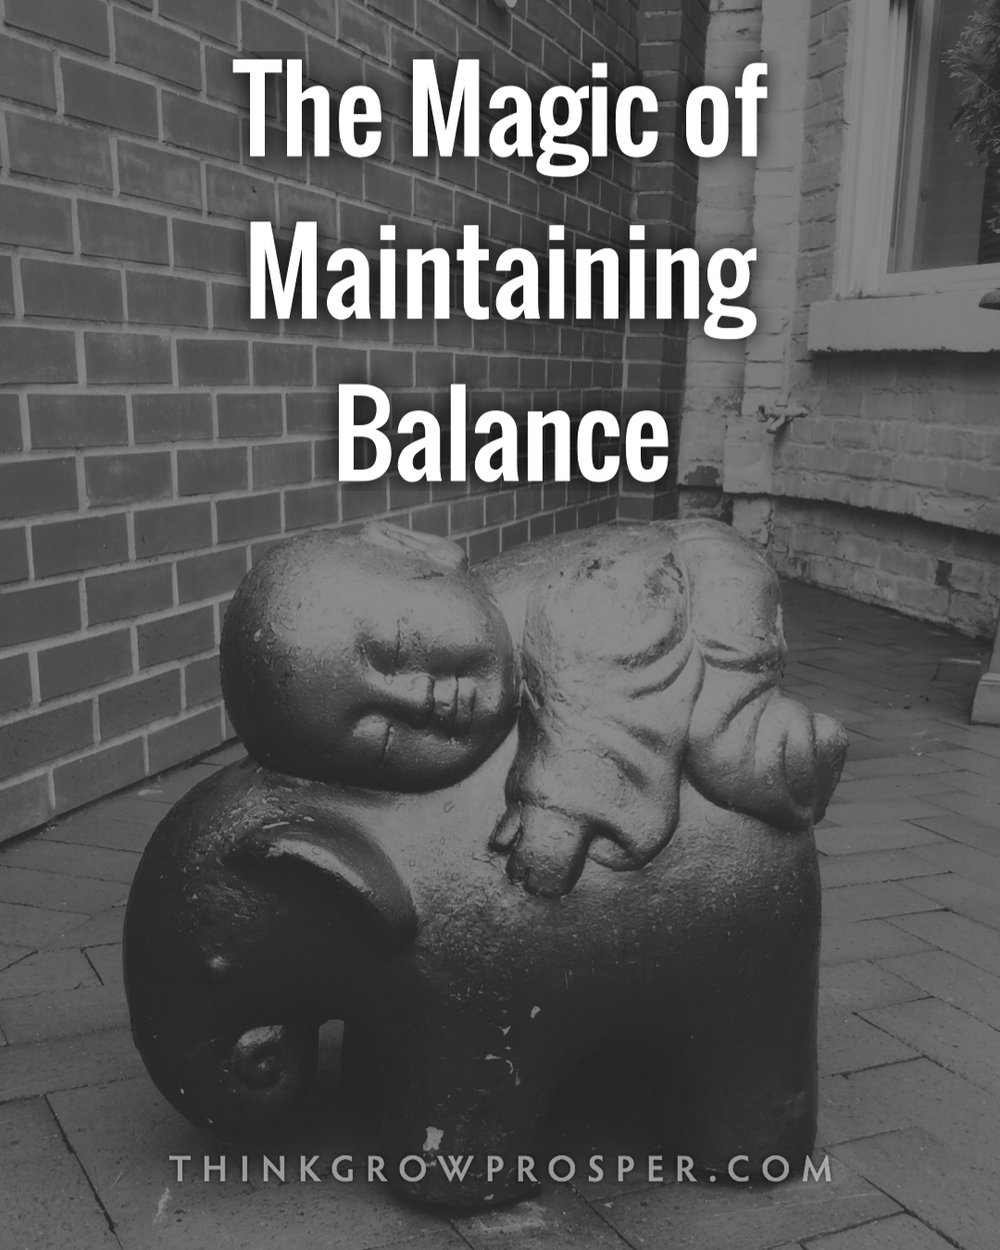 The Magic of Maintaining Balance